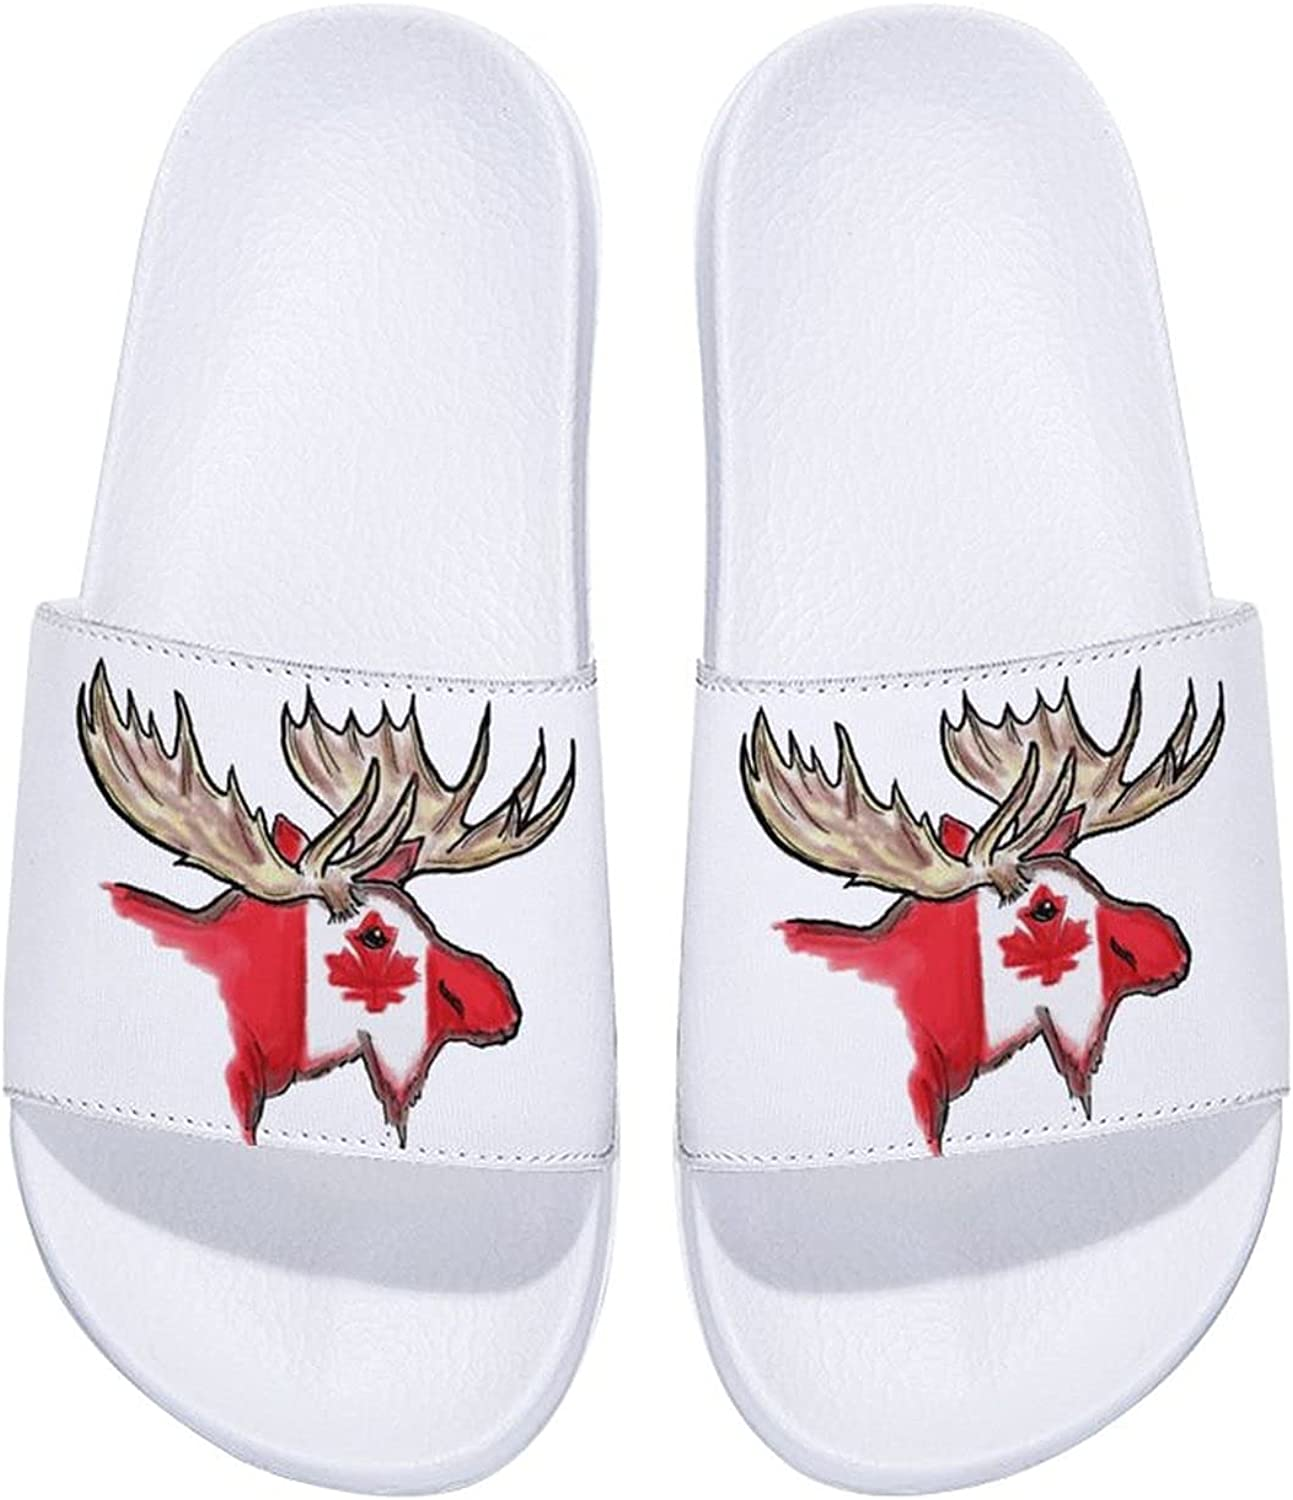 OFFicial site Elk in Canada Flag Men's and Slide 2021new shipping free Comfort Indoo Sandals Women's